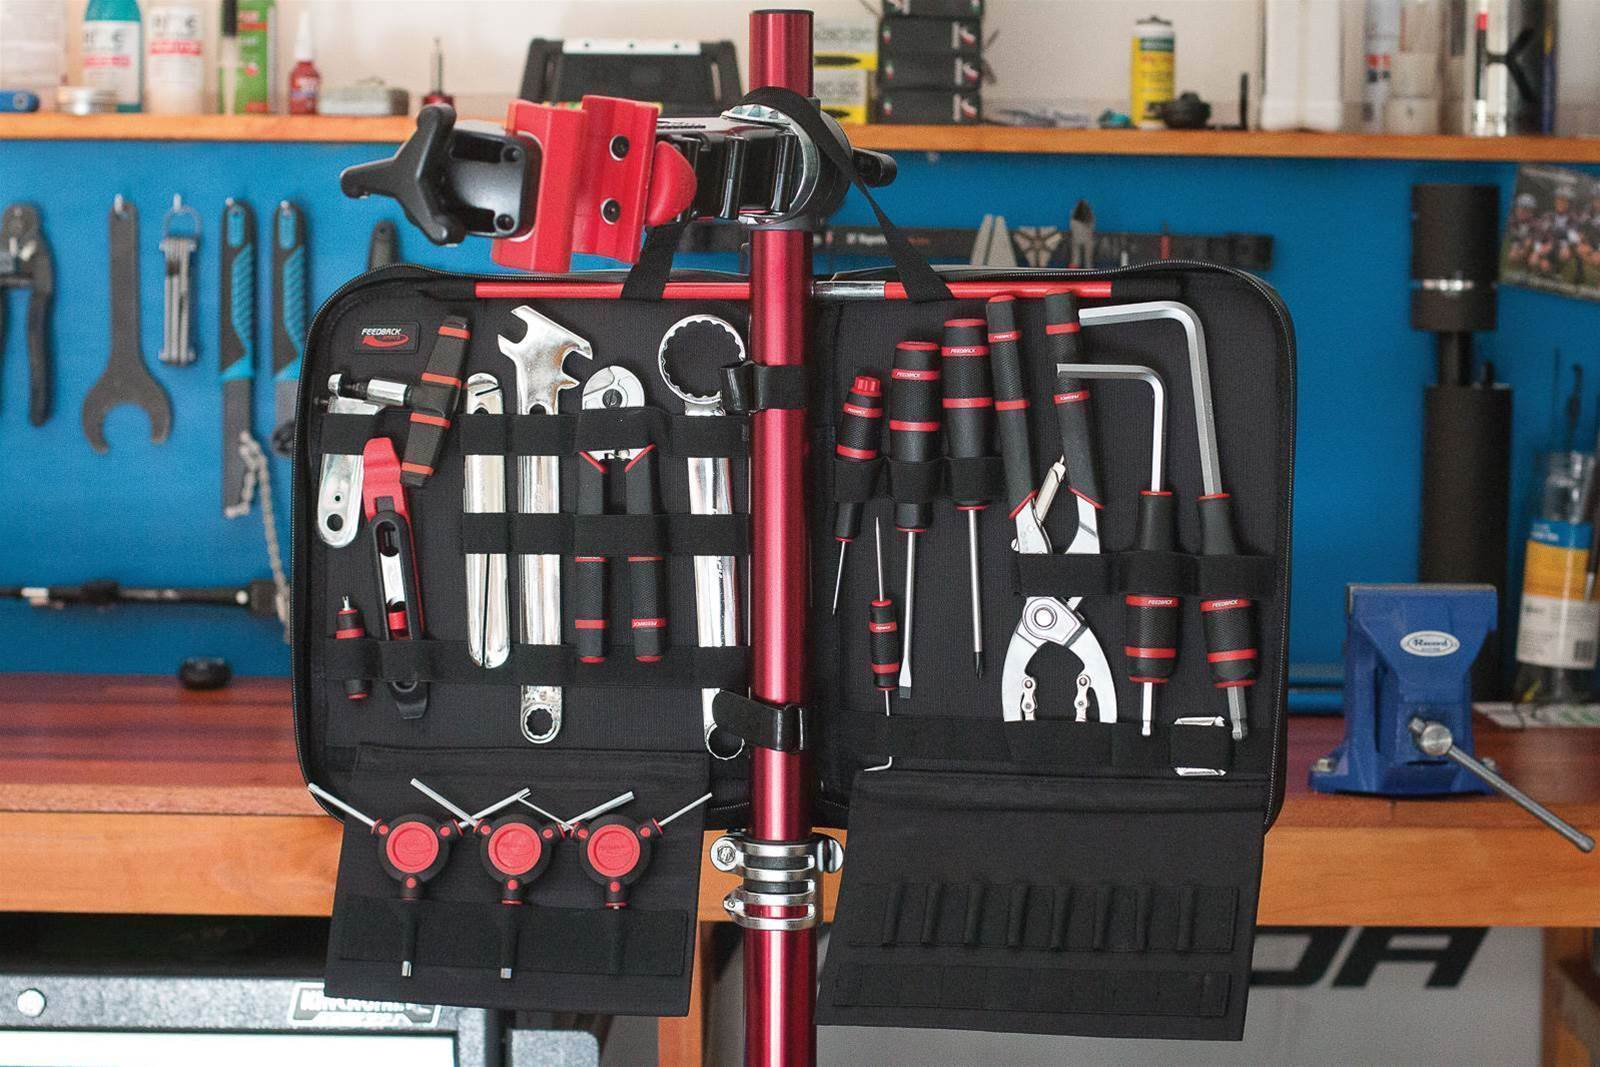 TOOLS AND TIPS: Your DIY masterclass